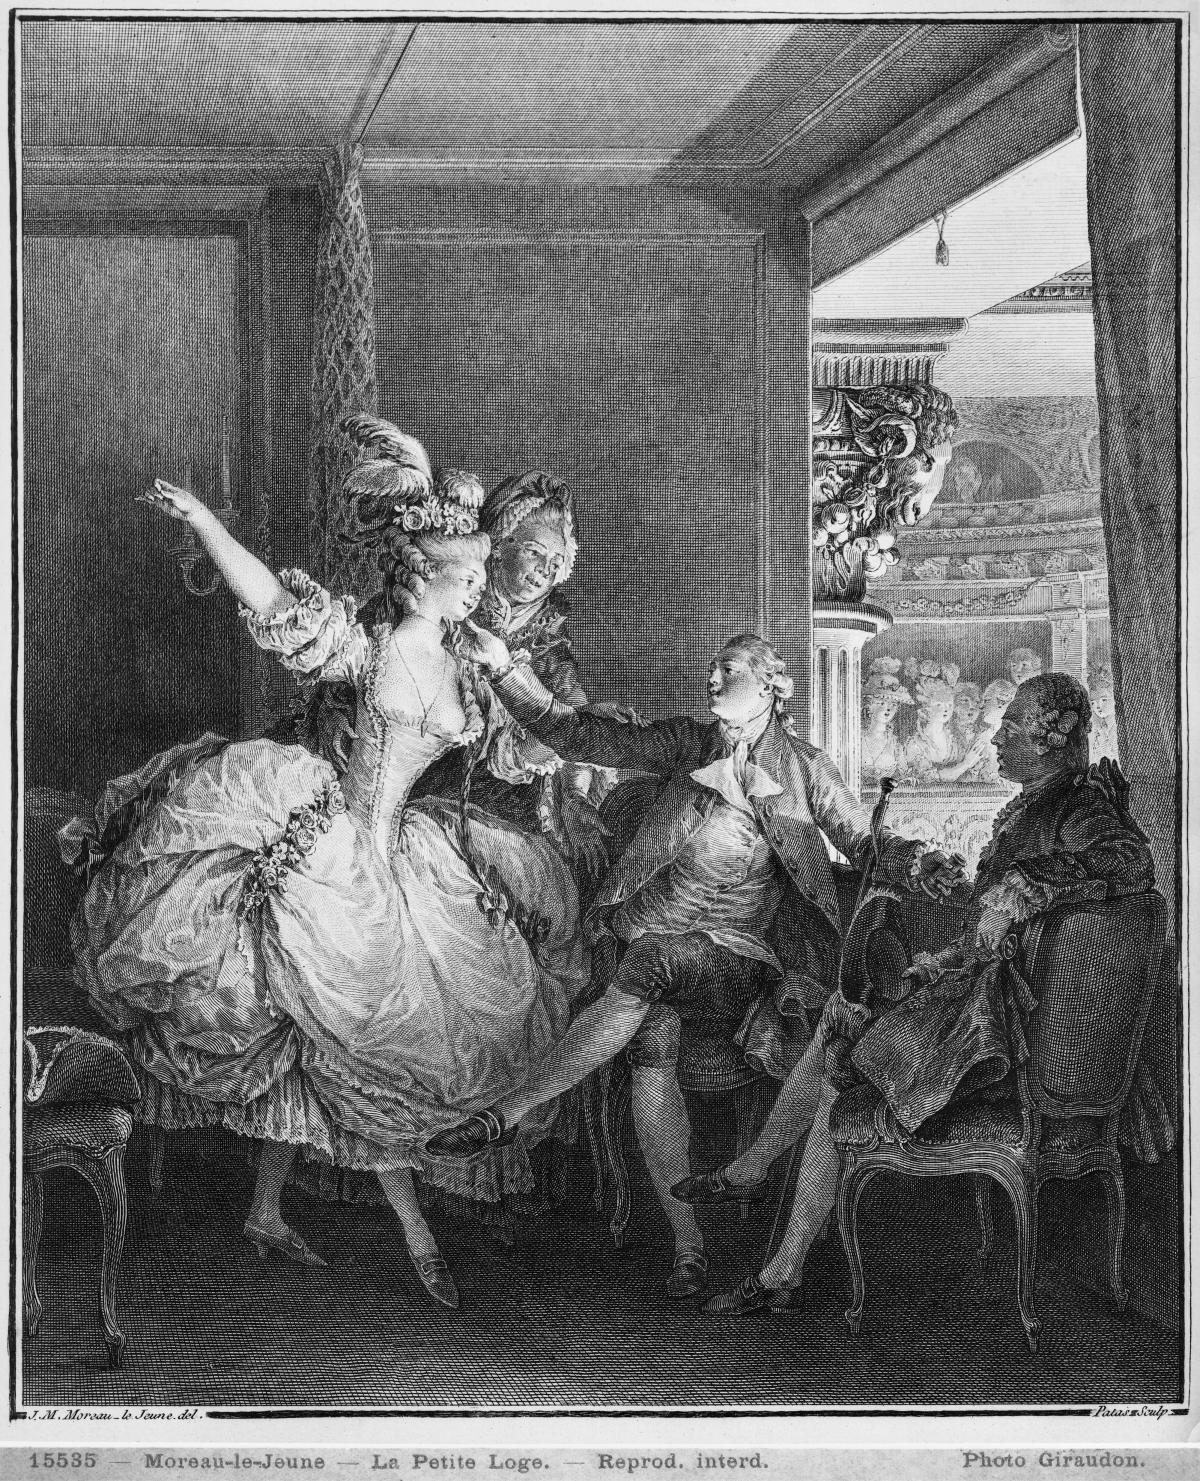 black and white drawing of a woman in a large dress, men sitting down next to her